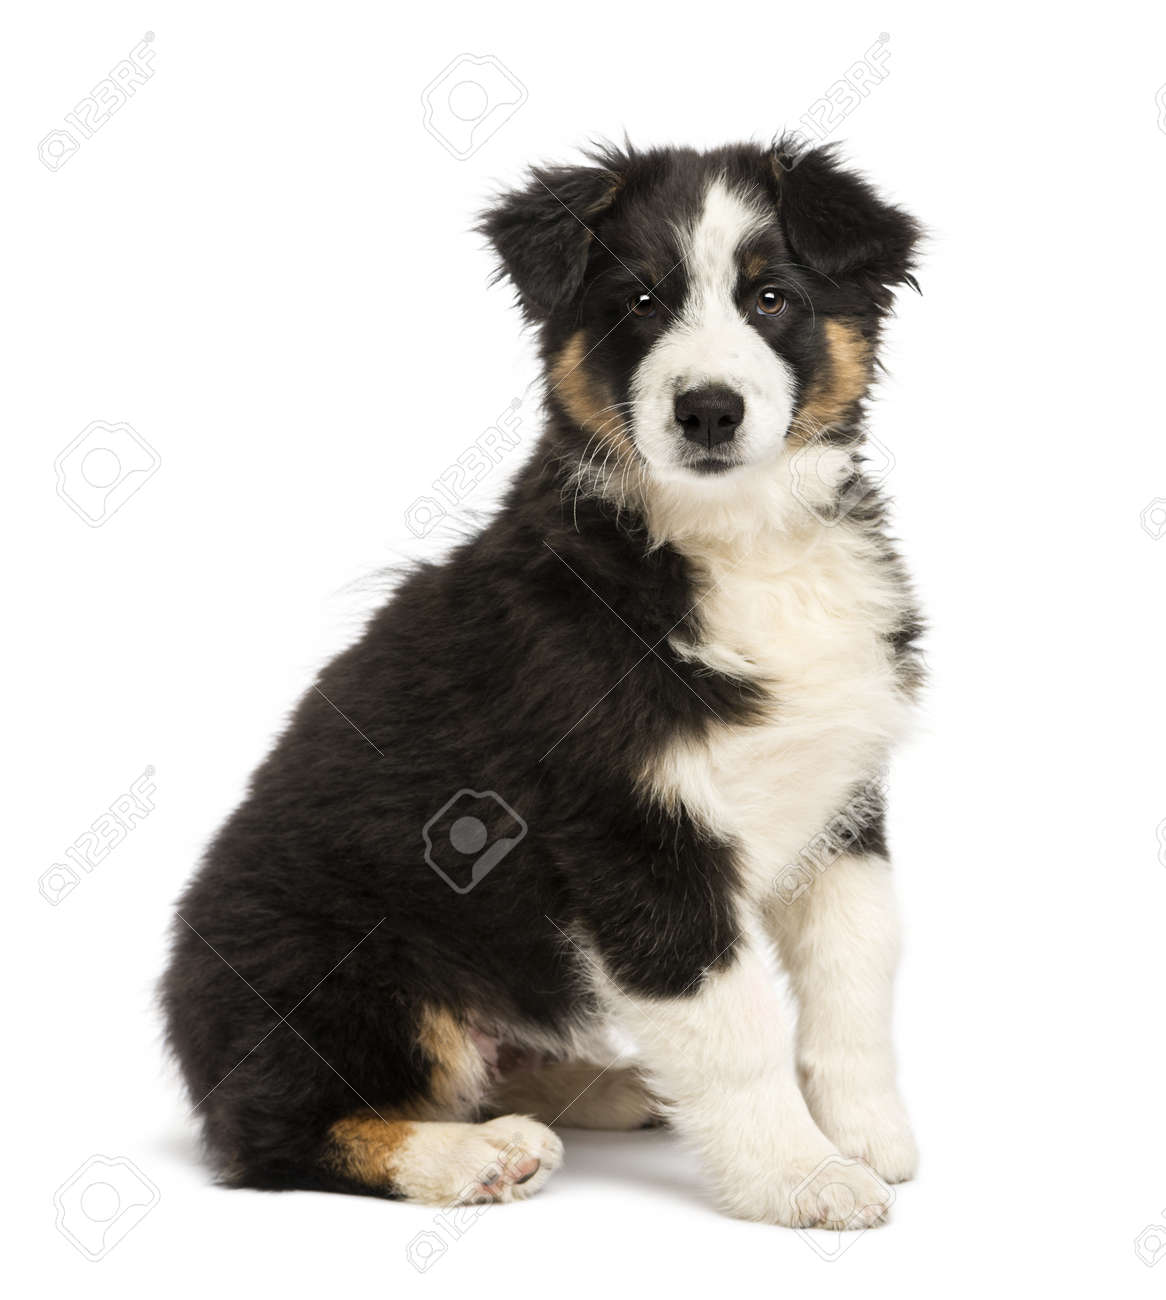 Australian Shepherd puppy, 3 months old, sitting and looking